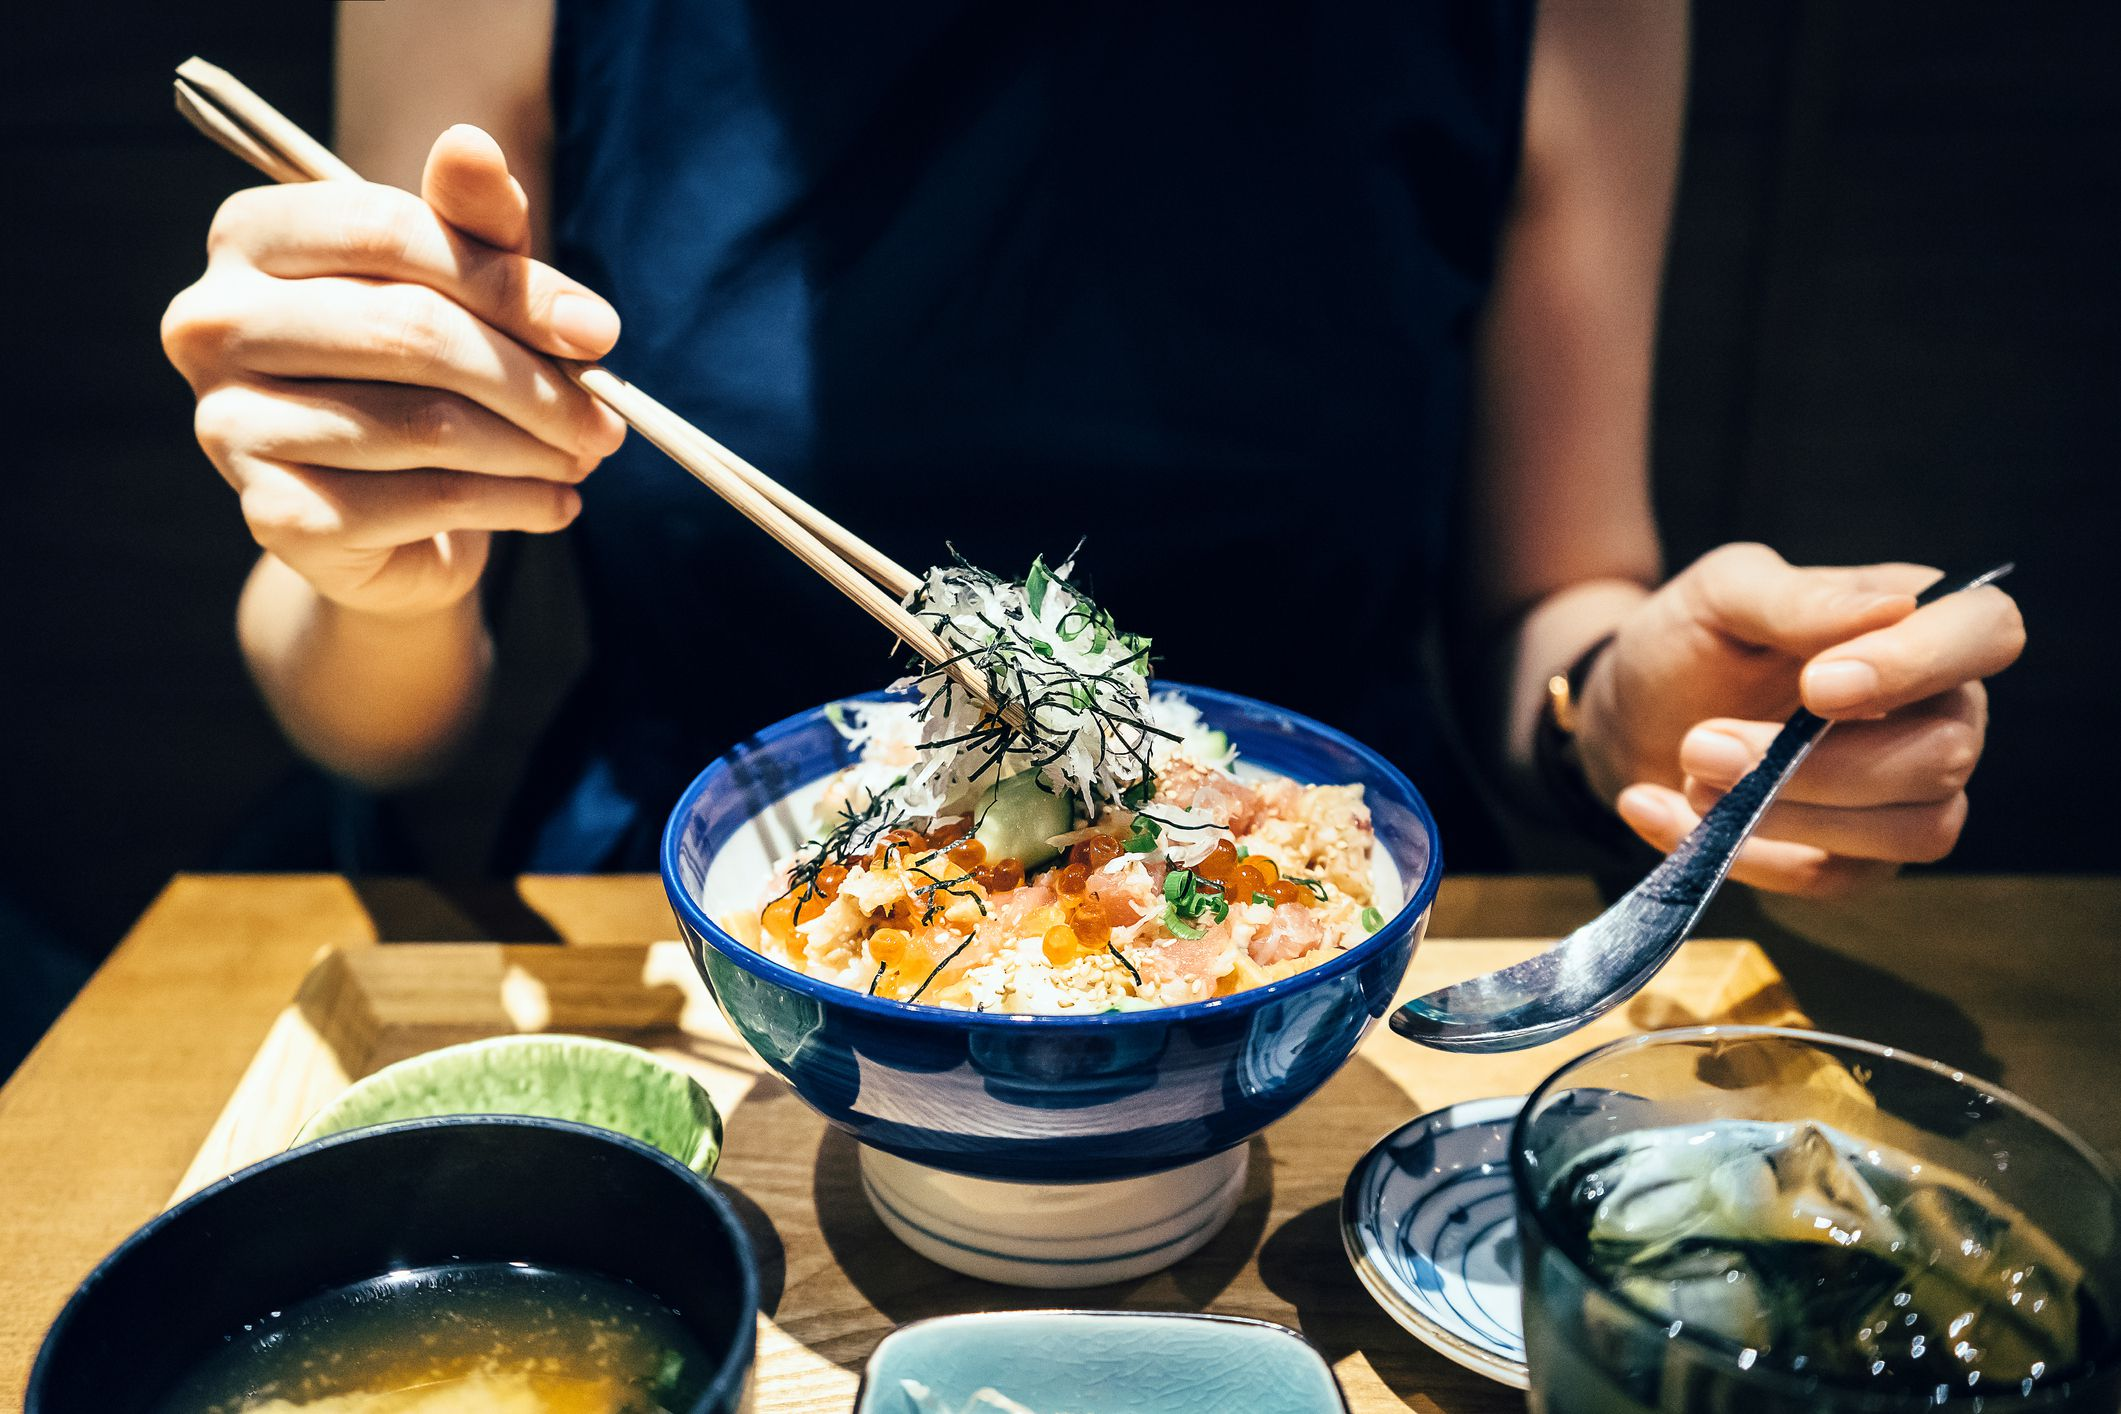 How to master the art of eating with chopsticks